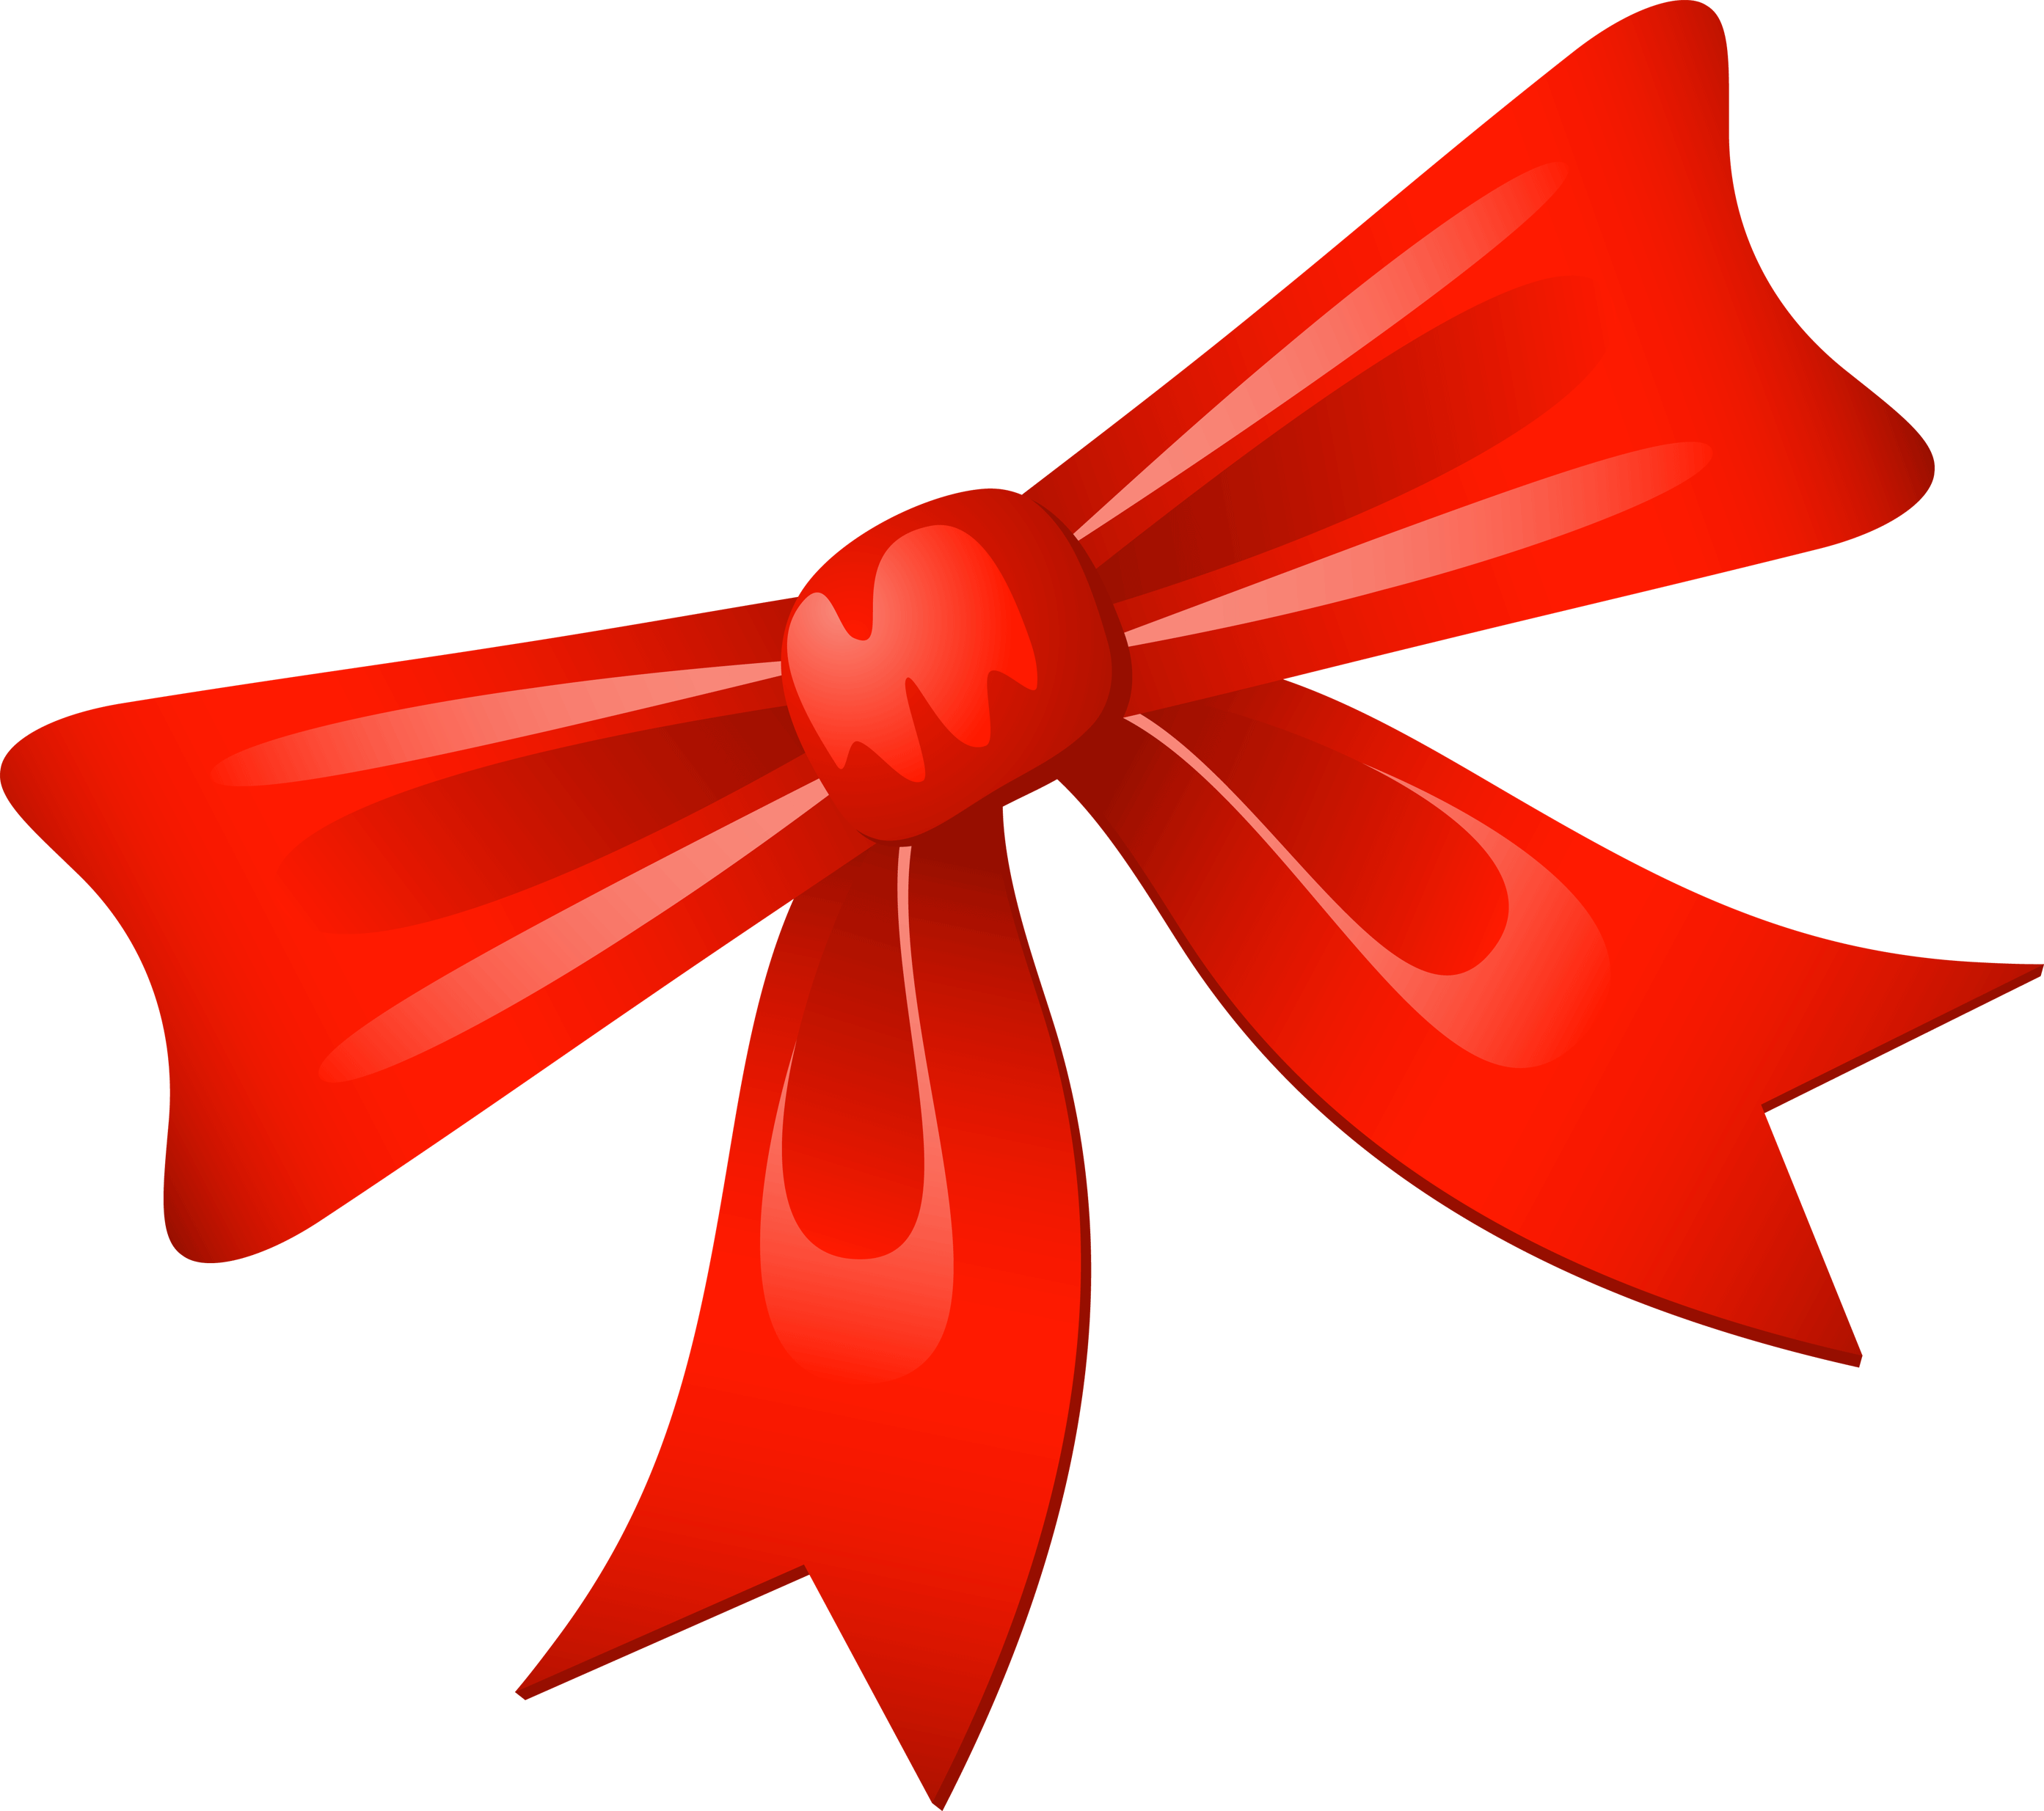 Bows clipart red. Free christmas bow download